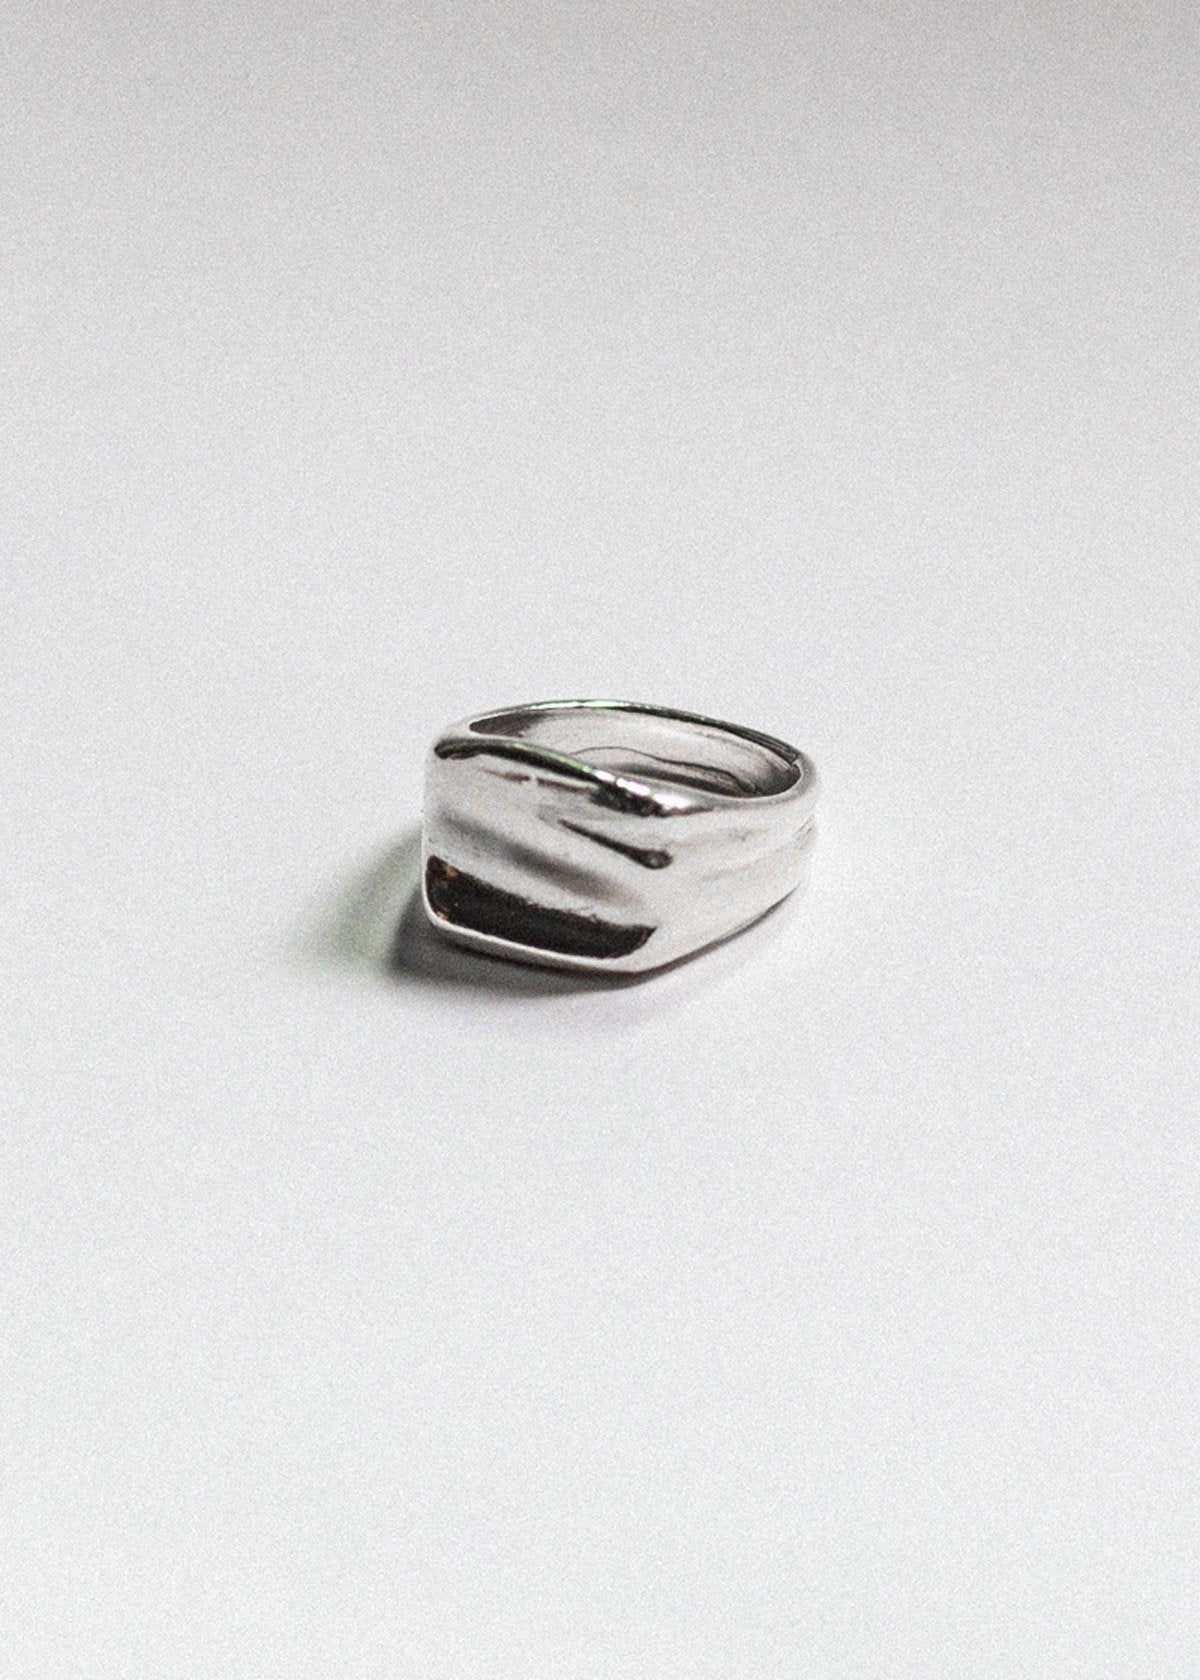 925 sterling silver irregular organic signet ring